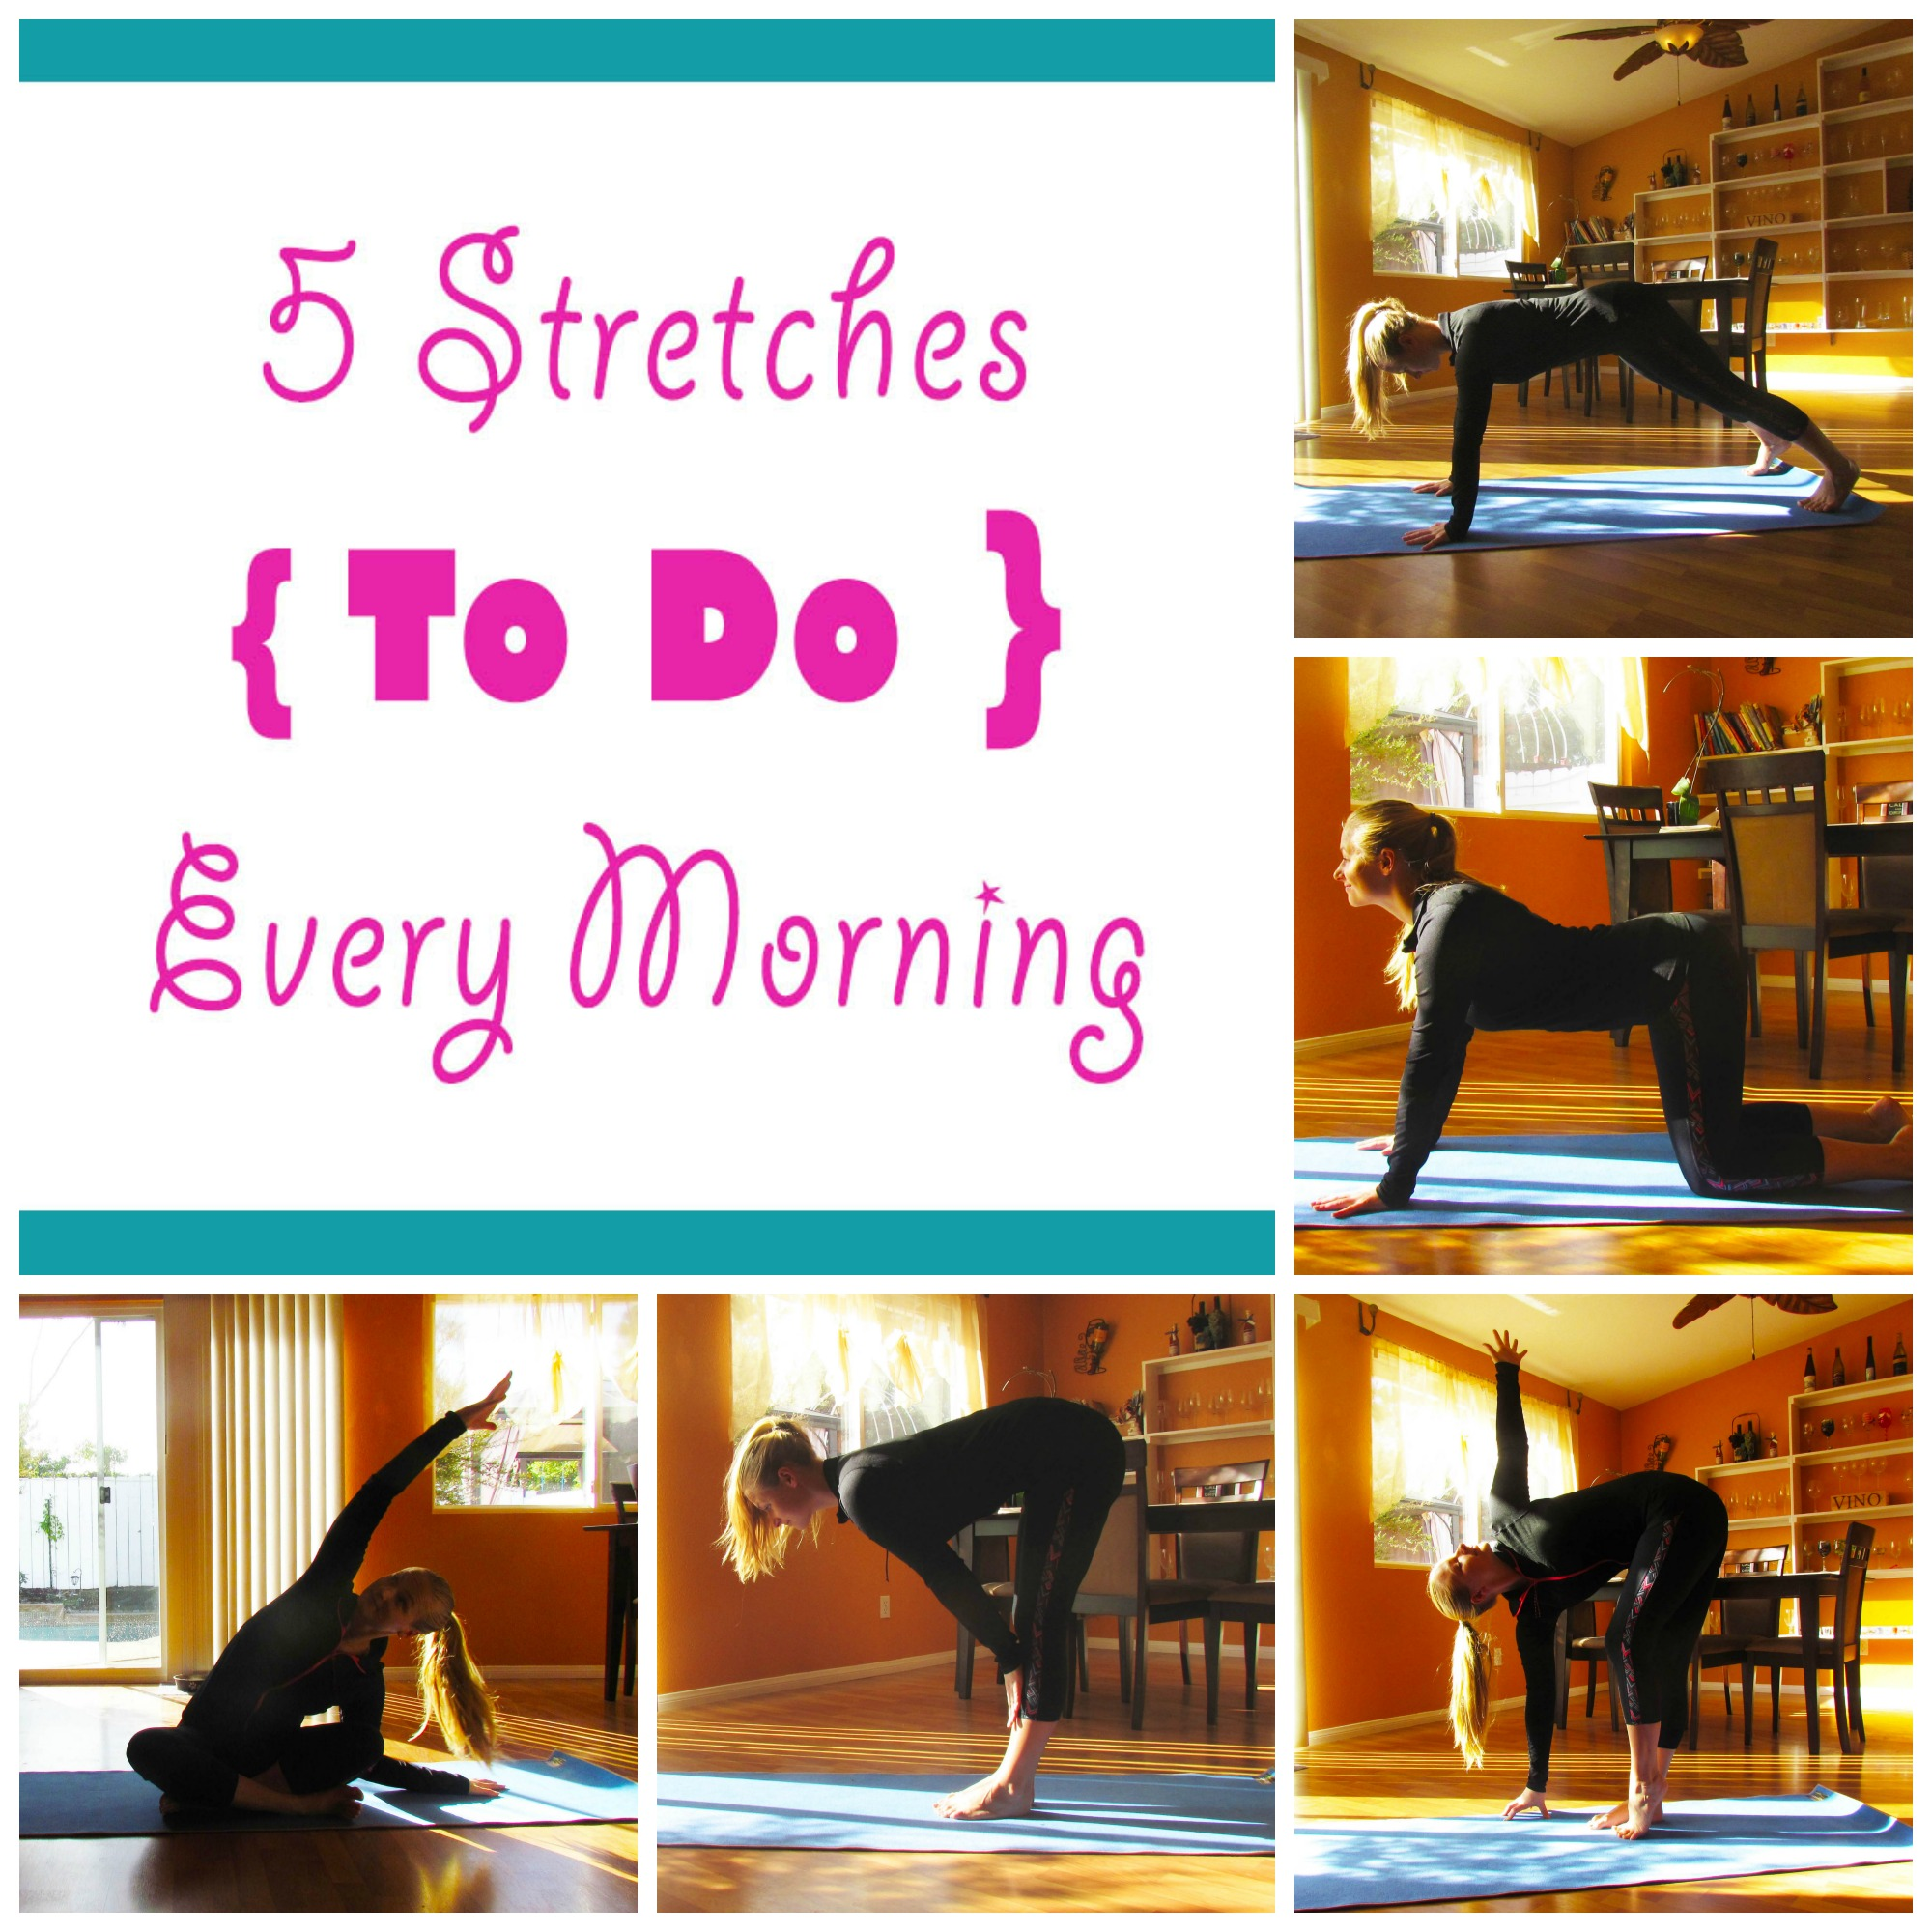 Morning Stretches Collage